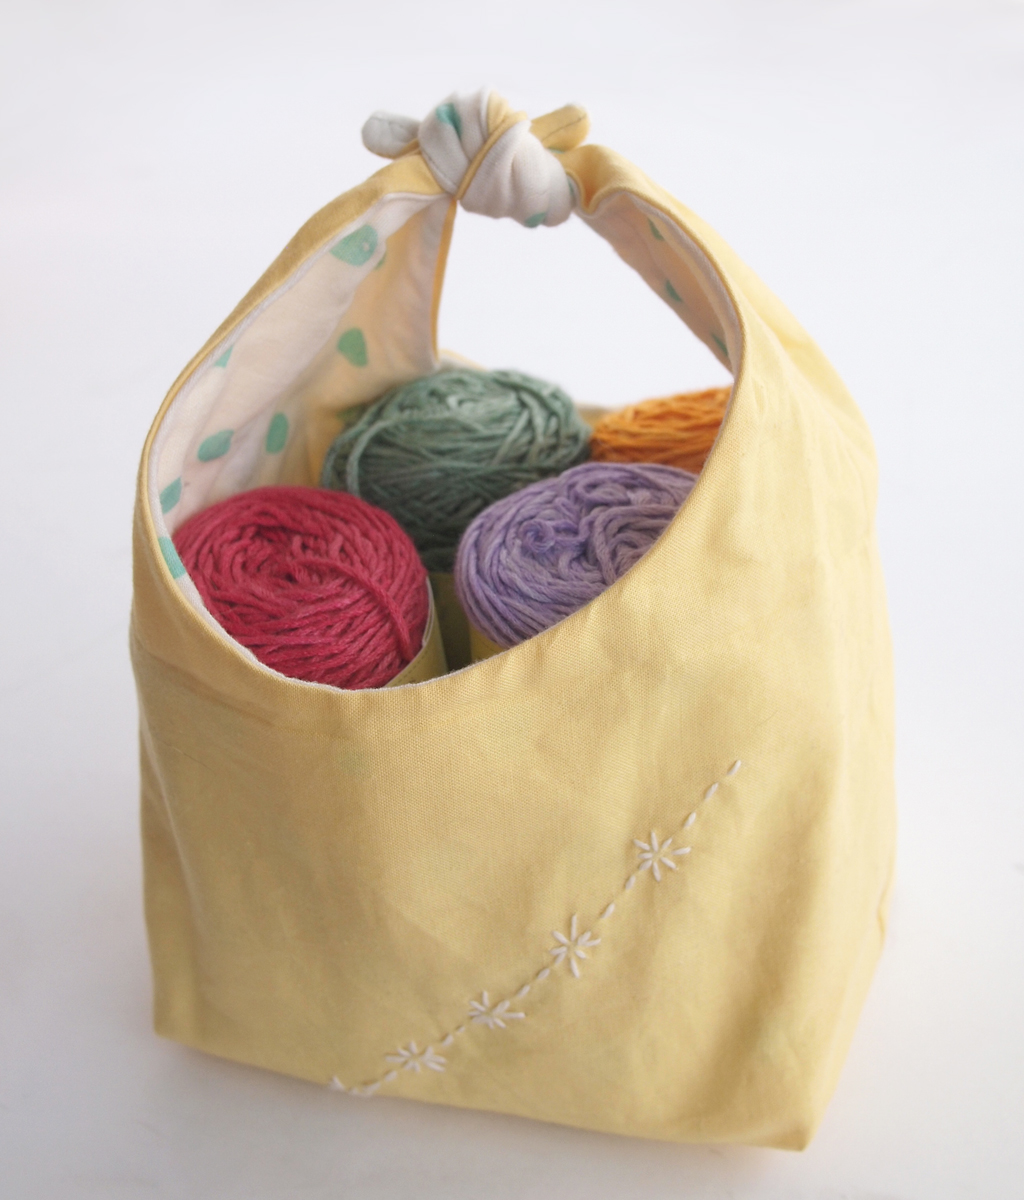 Fancy Tiger Crafts: Dan's Fabric Basket with Sashiko